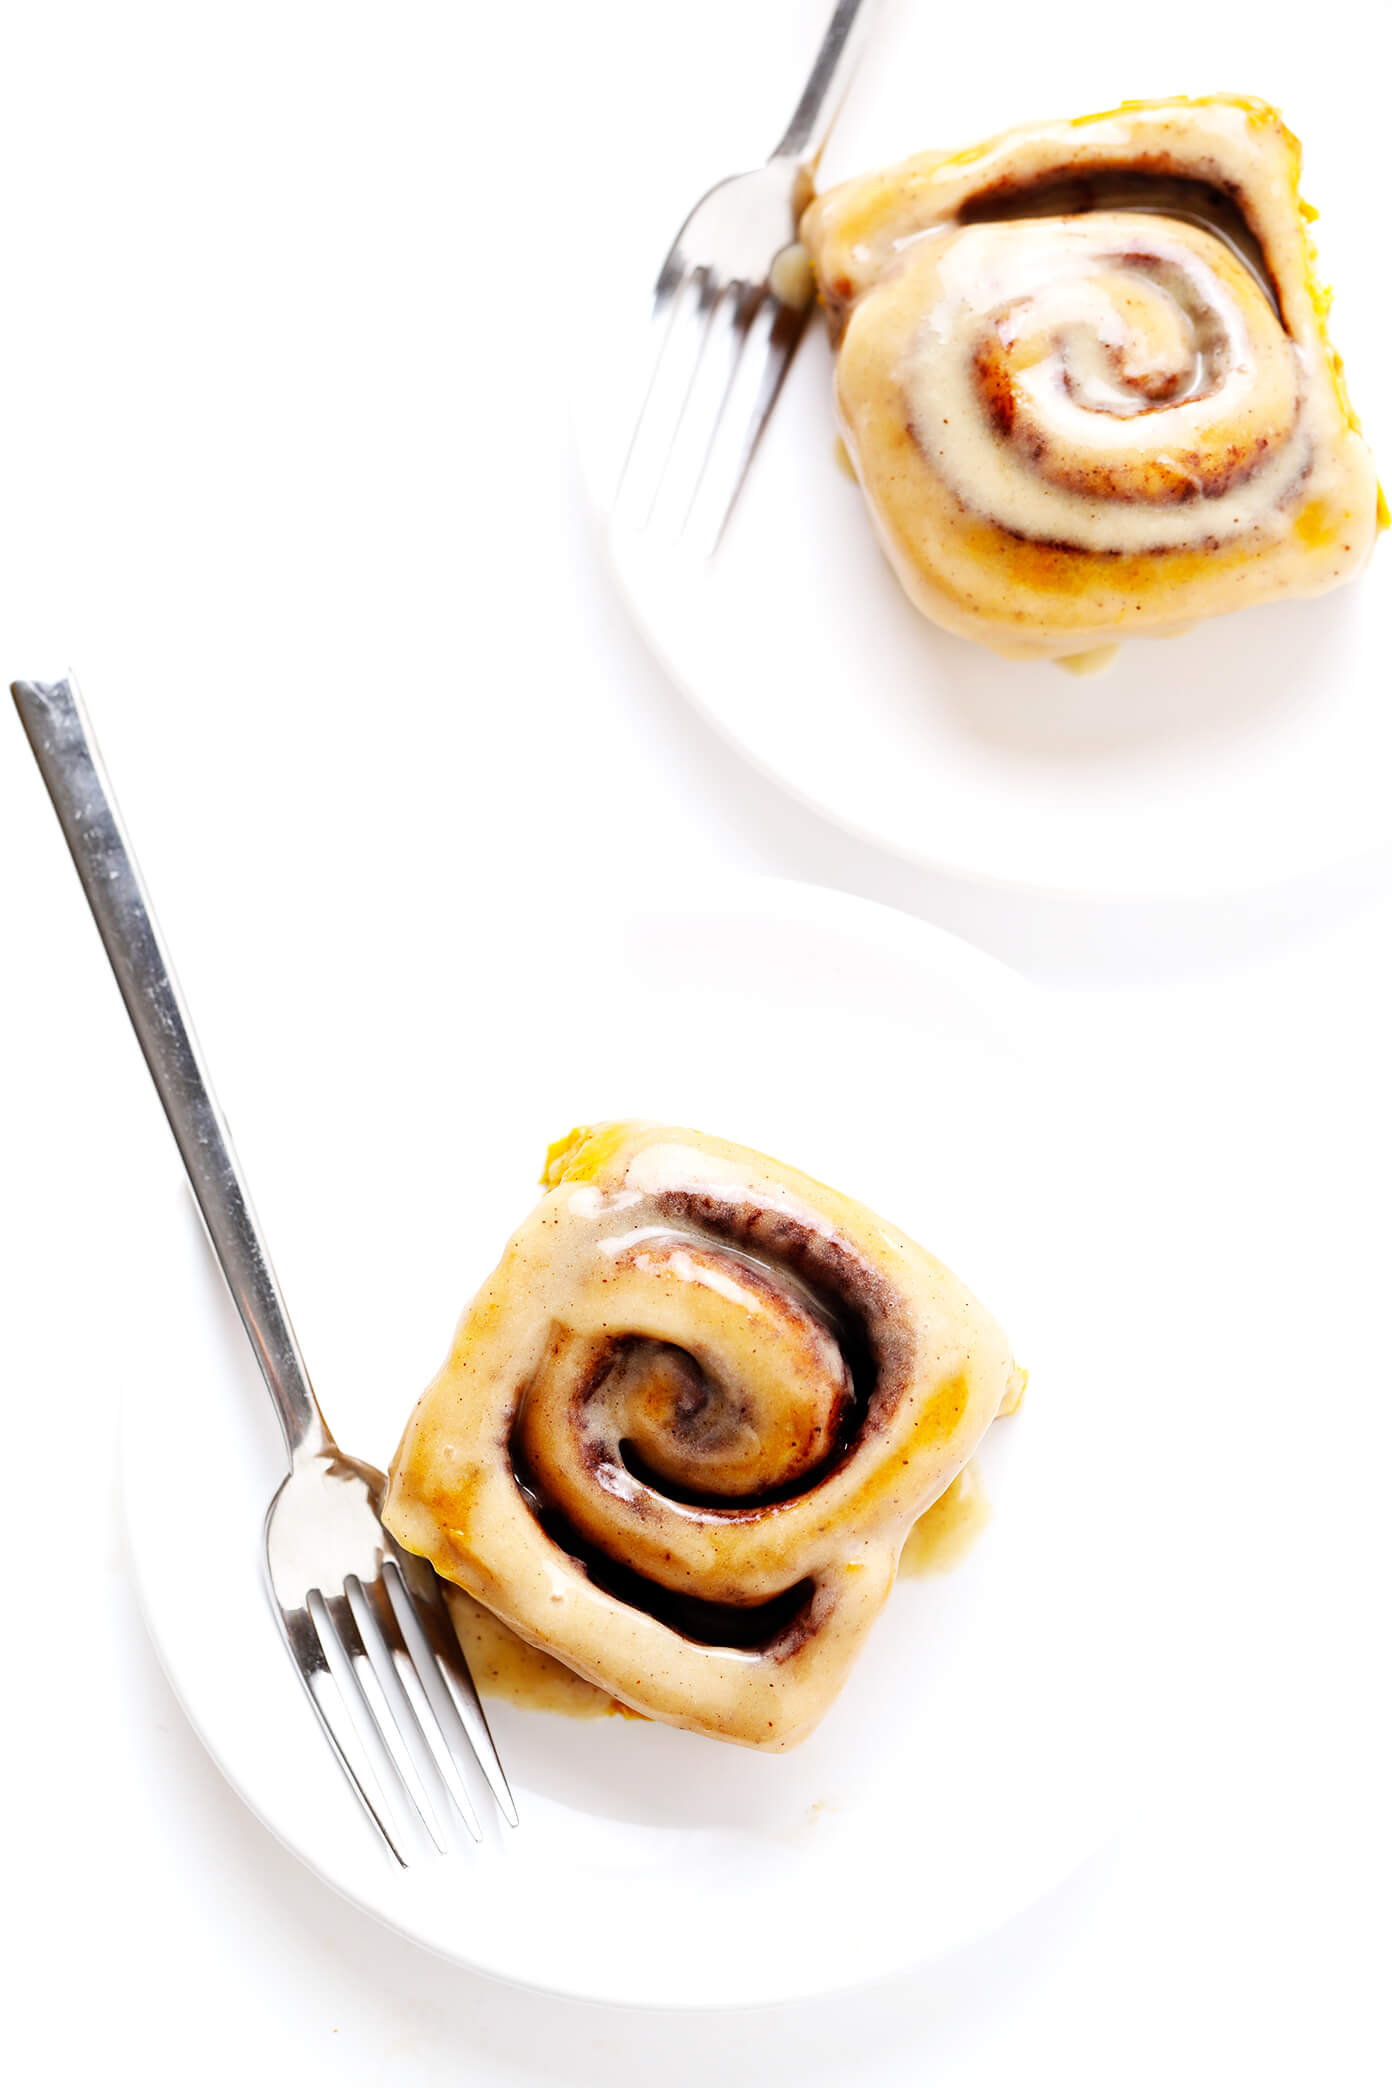 Individual Pumpkin Cinnamon Rolls on Plates with Forks